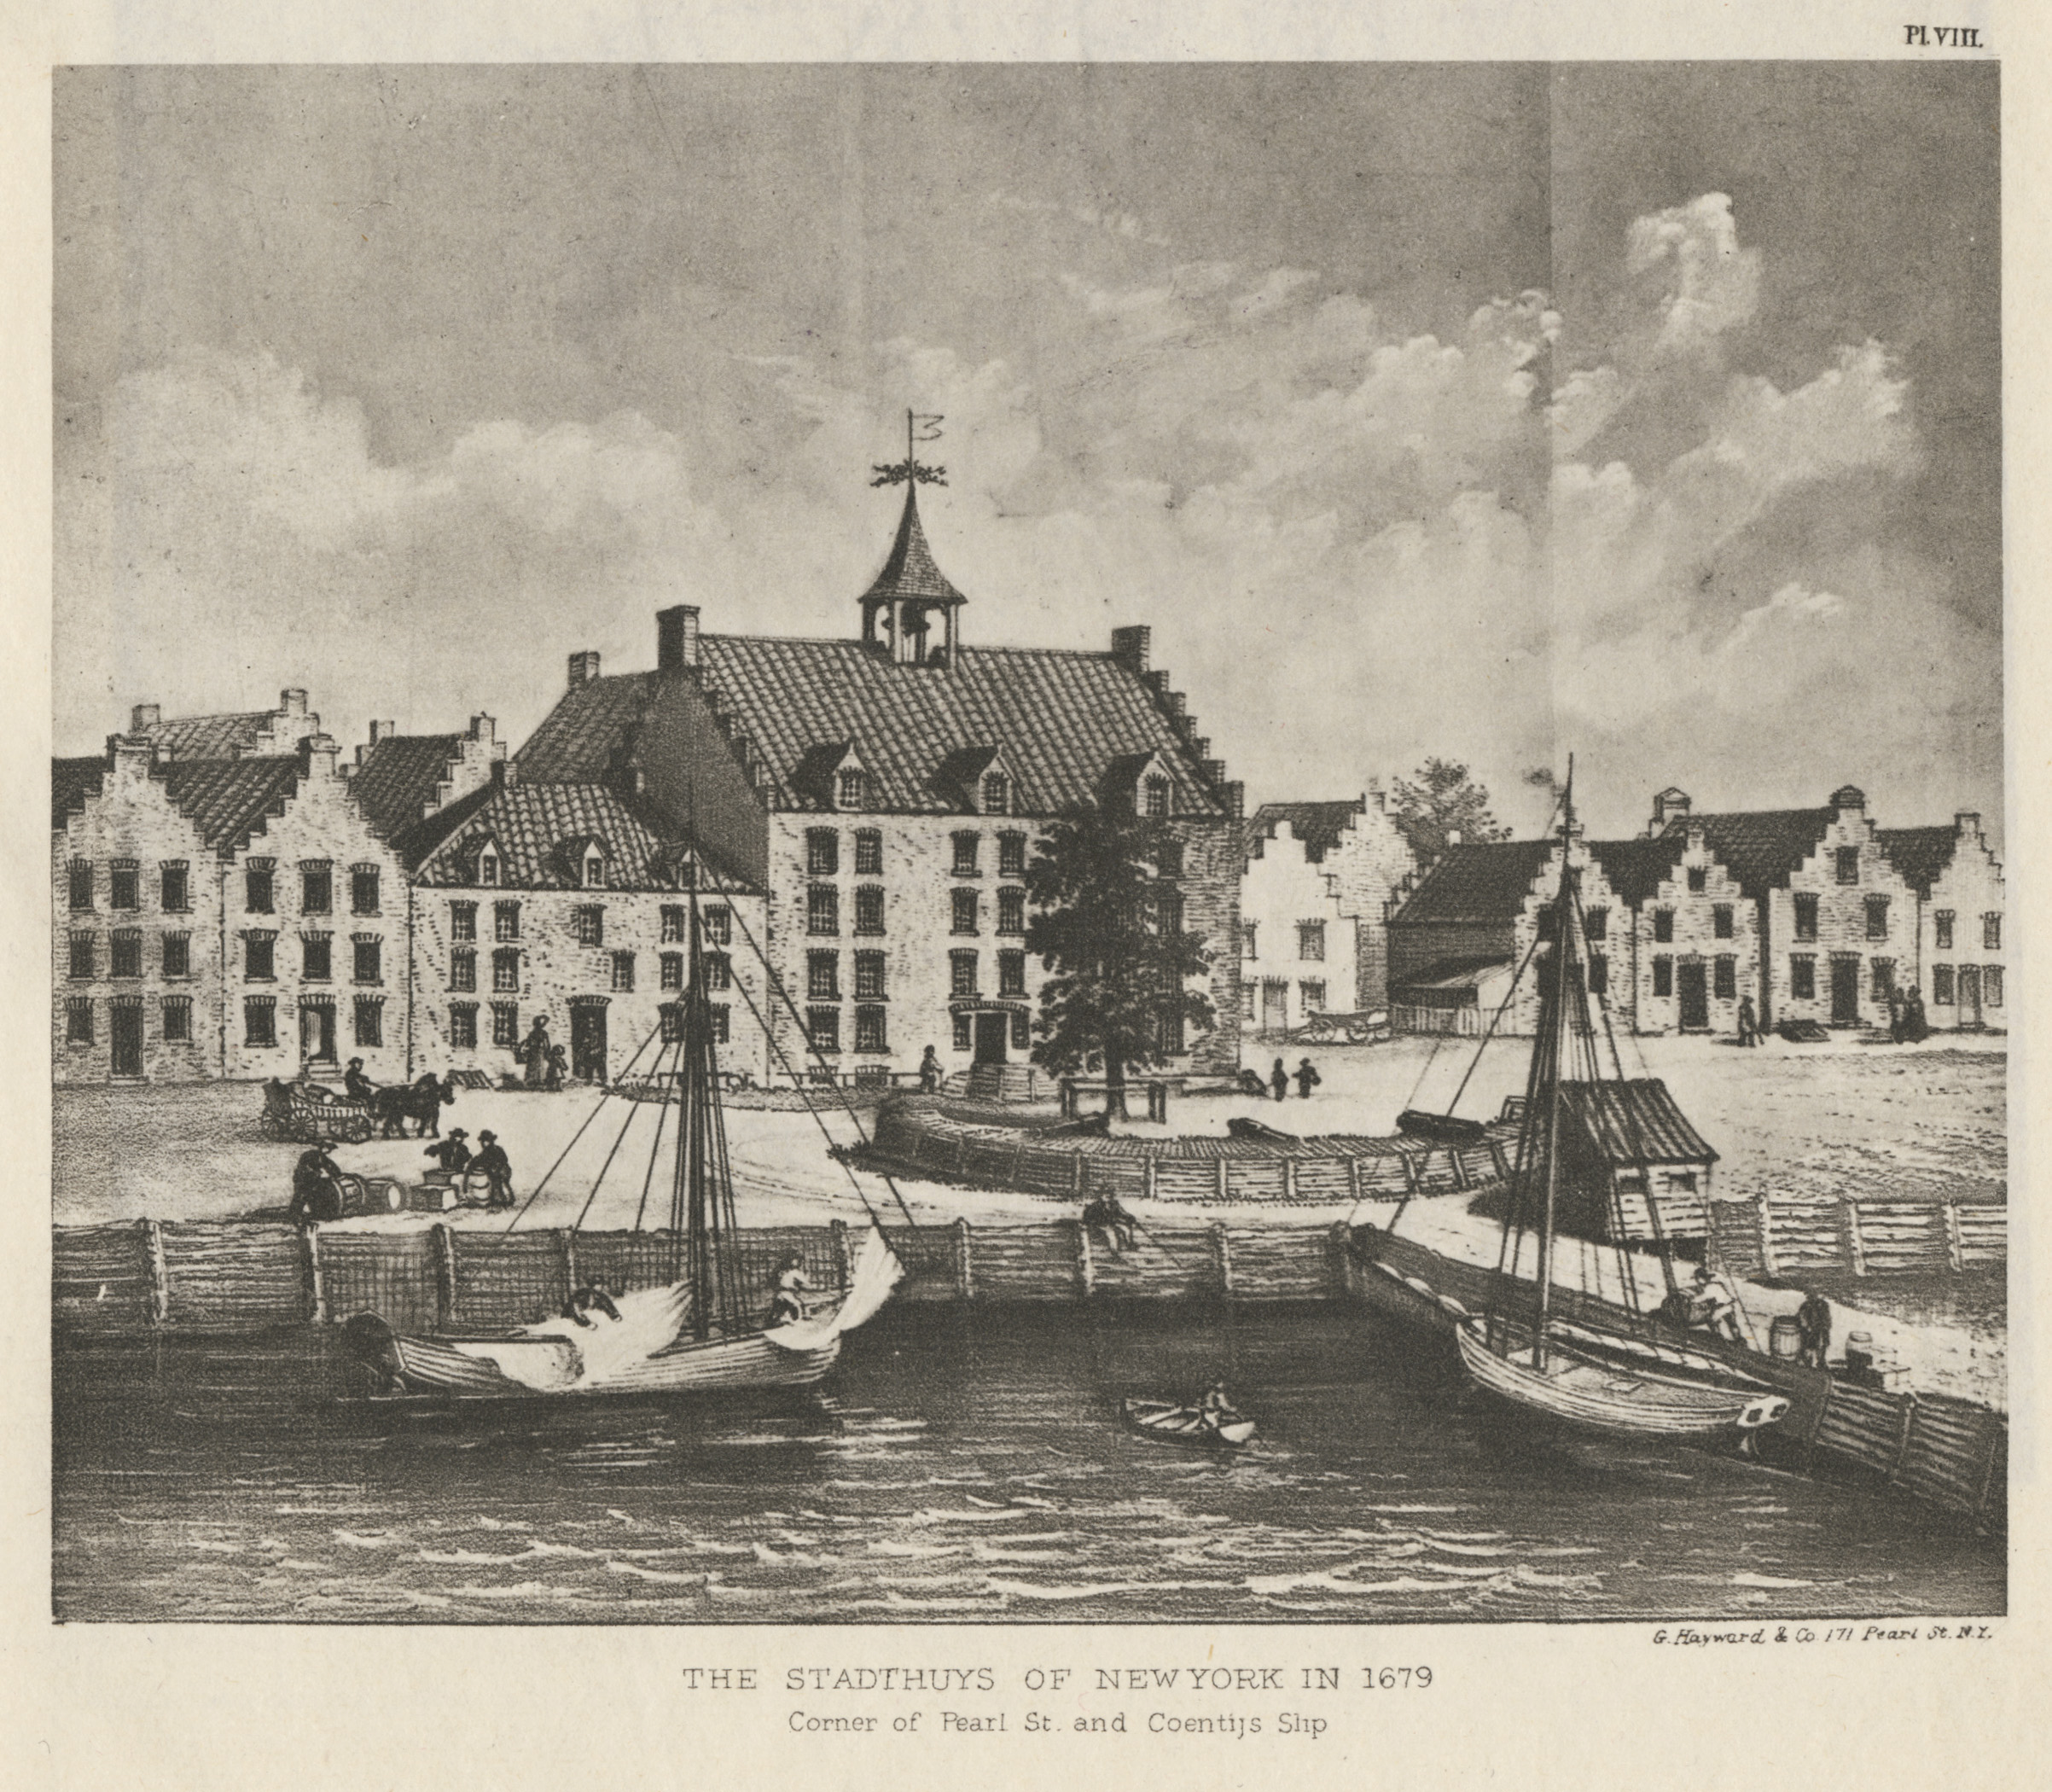 The plank  waal  in front of the Stadt Huys and the battery, in an early-20th-Century interpretation. Stokes,  Iconography of Manhattan Island .